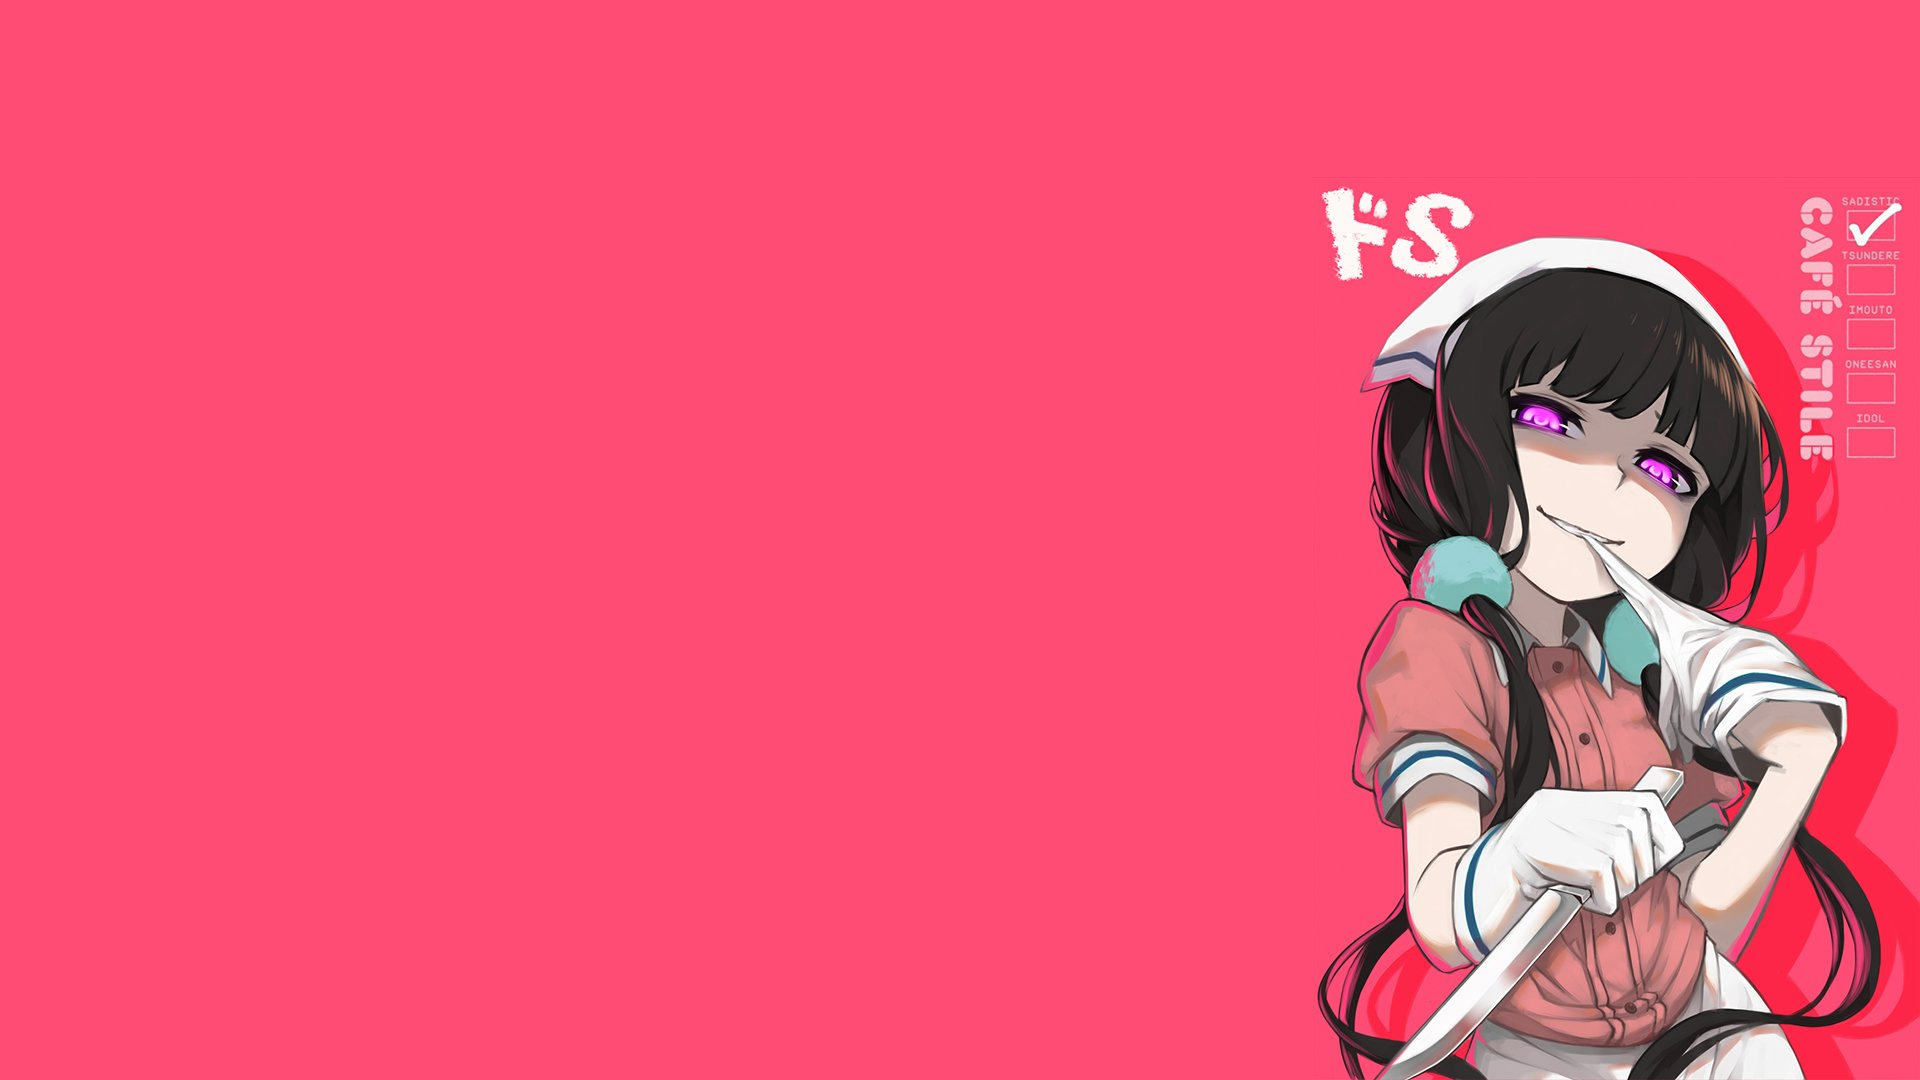 51 blend s hd wallpapers background images wallpaper abyss